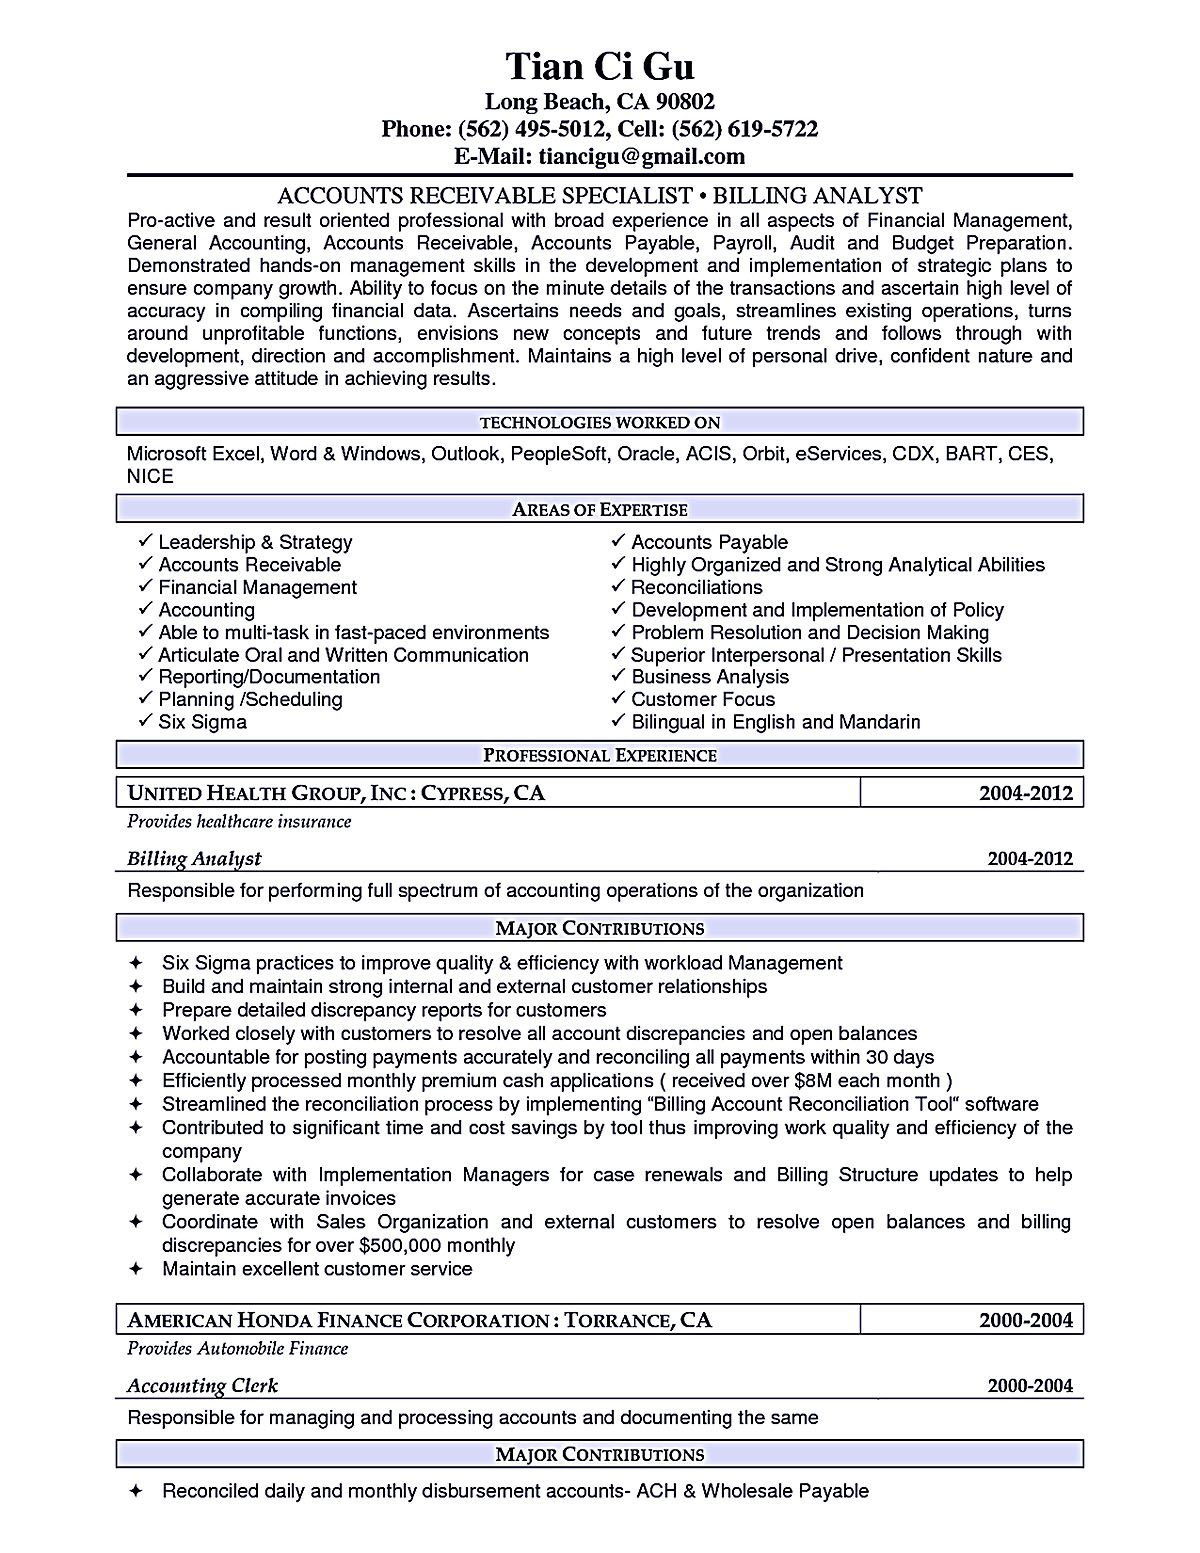 Account Receivable Resume Shows Both Technical And Interpersonal Skills You Have Your Professional Summary Or Profile Must Be Included With Short Of